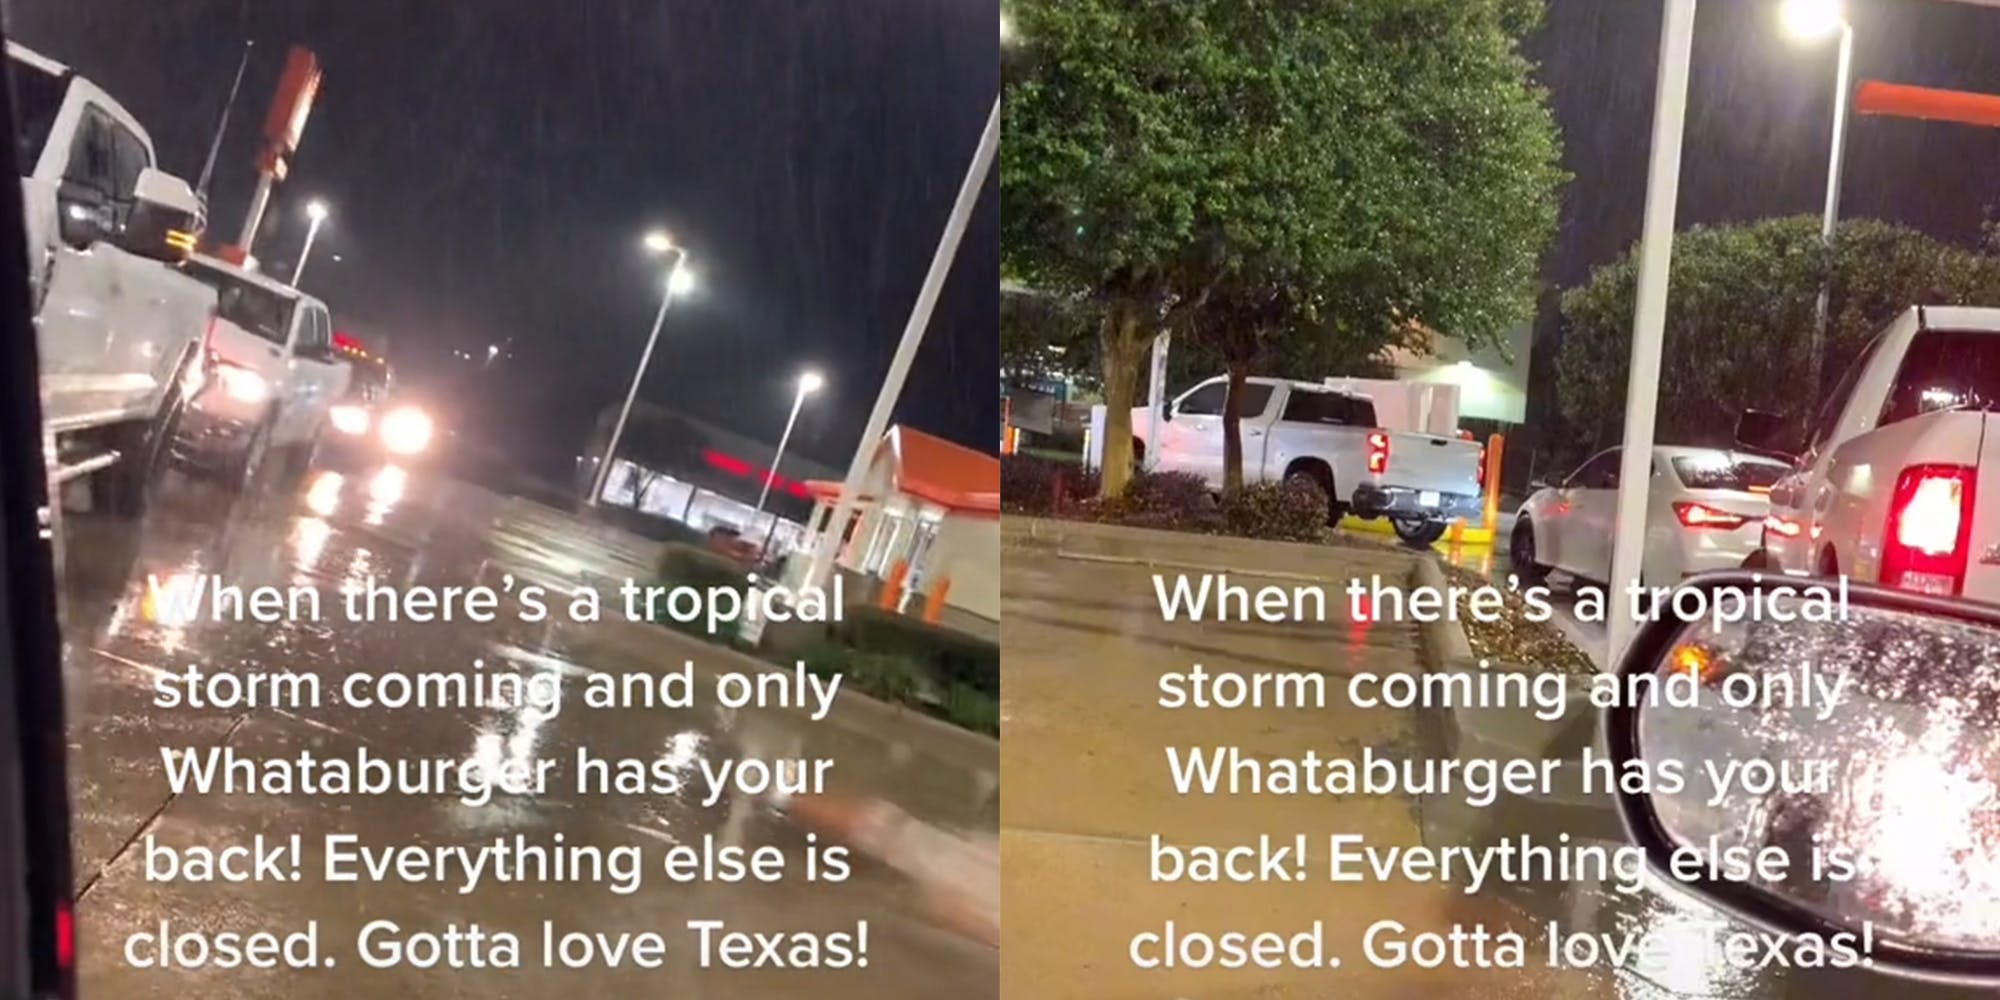 """Whataburger drive-thru filled with vehicles during tropical storm with caption """"When there's a tropical storm coming and only Whataburger has your back! Everything else is closed. Gotta <span class="""